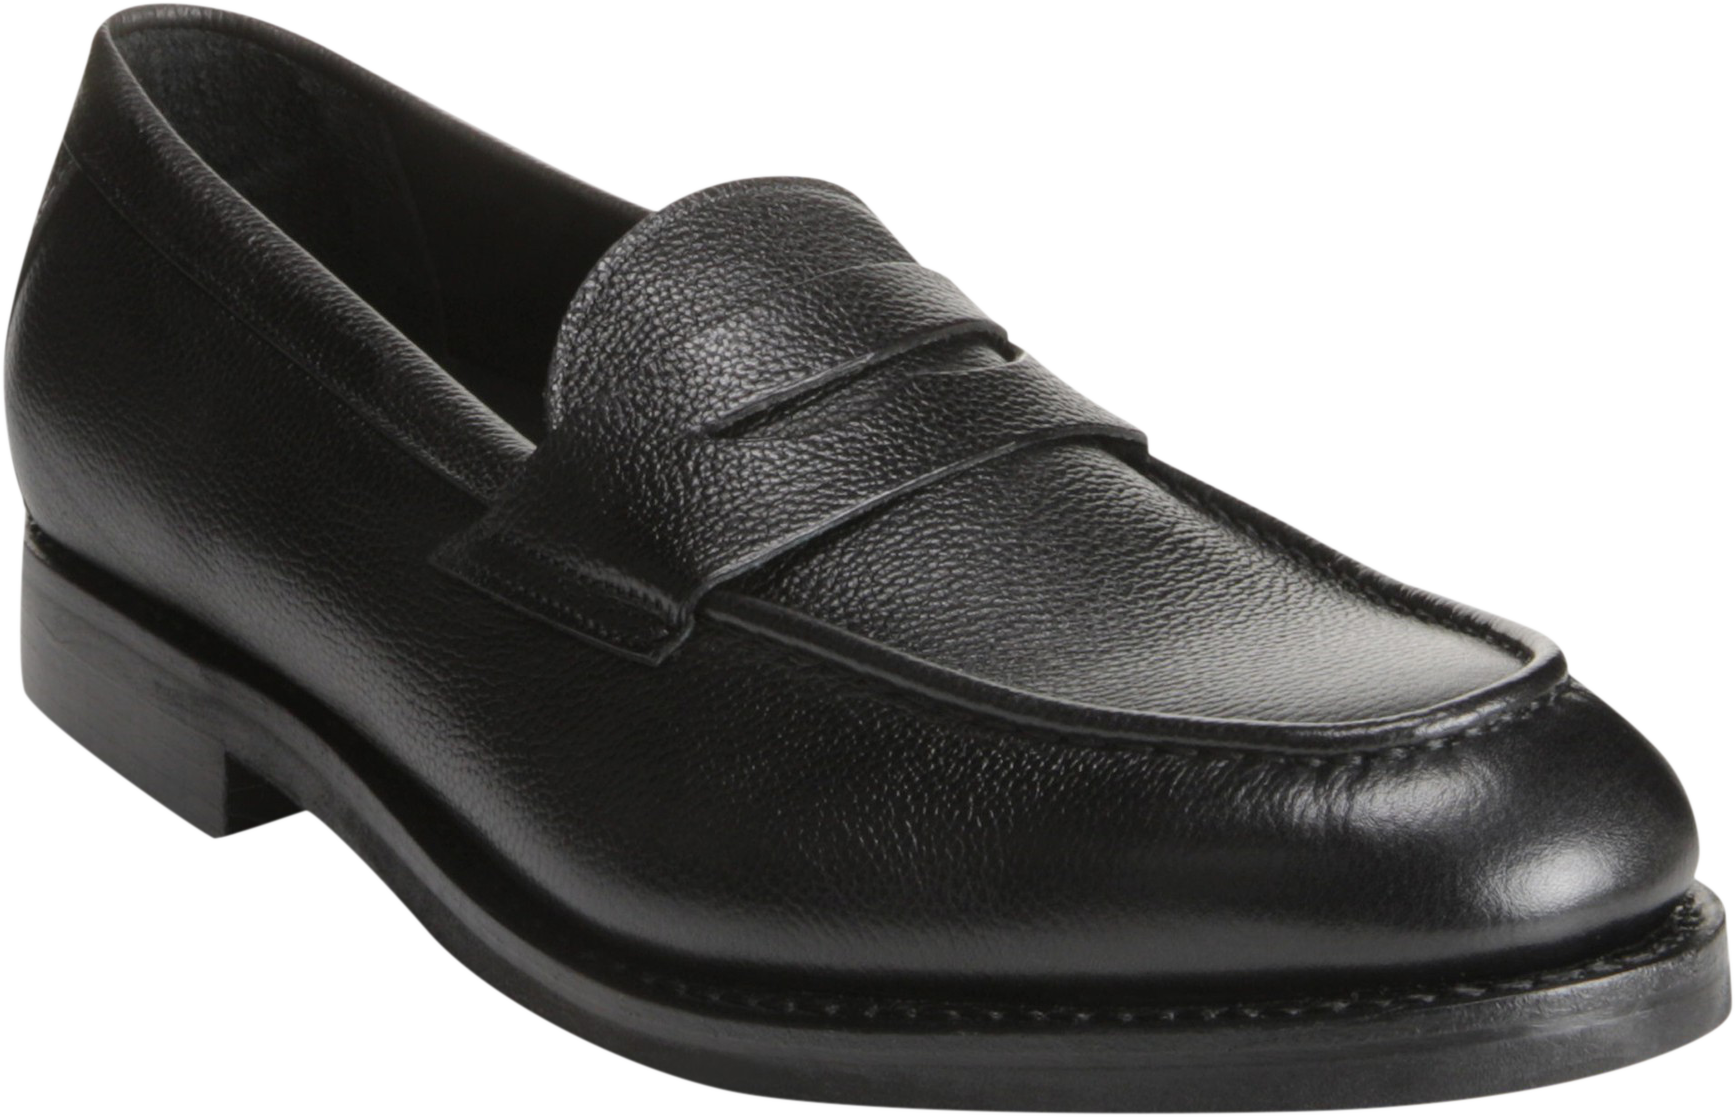 57e8e4dc976 Allen Edmonds Nomad Penny Loafers - Allen Edmonds